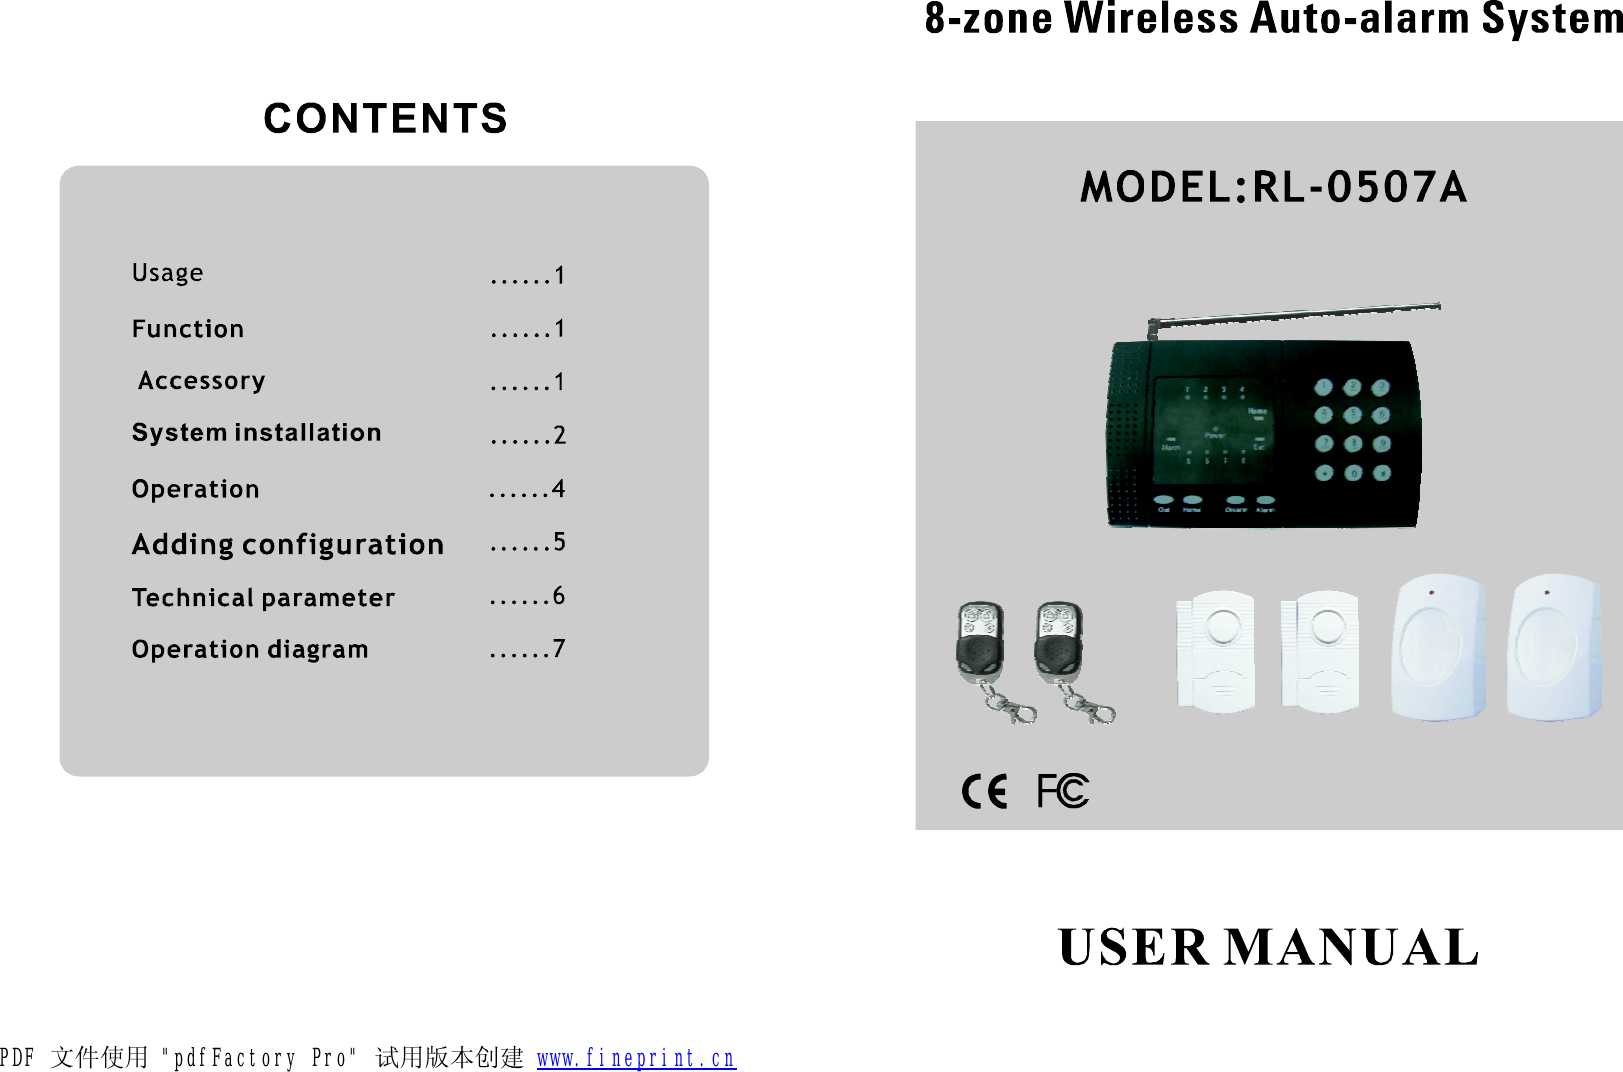 Roule Electronics Rl R5 Wireless Alarm Kit User Manual 0507a Automate Car Wiring Diagram